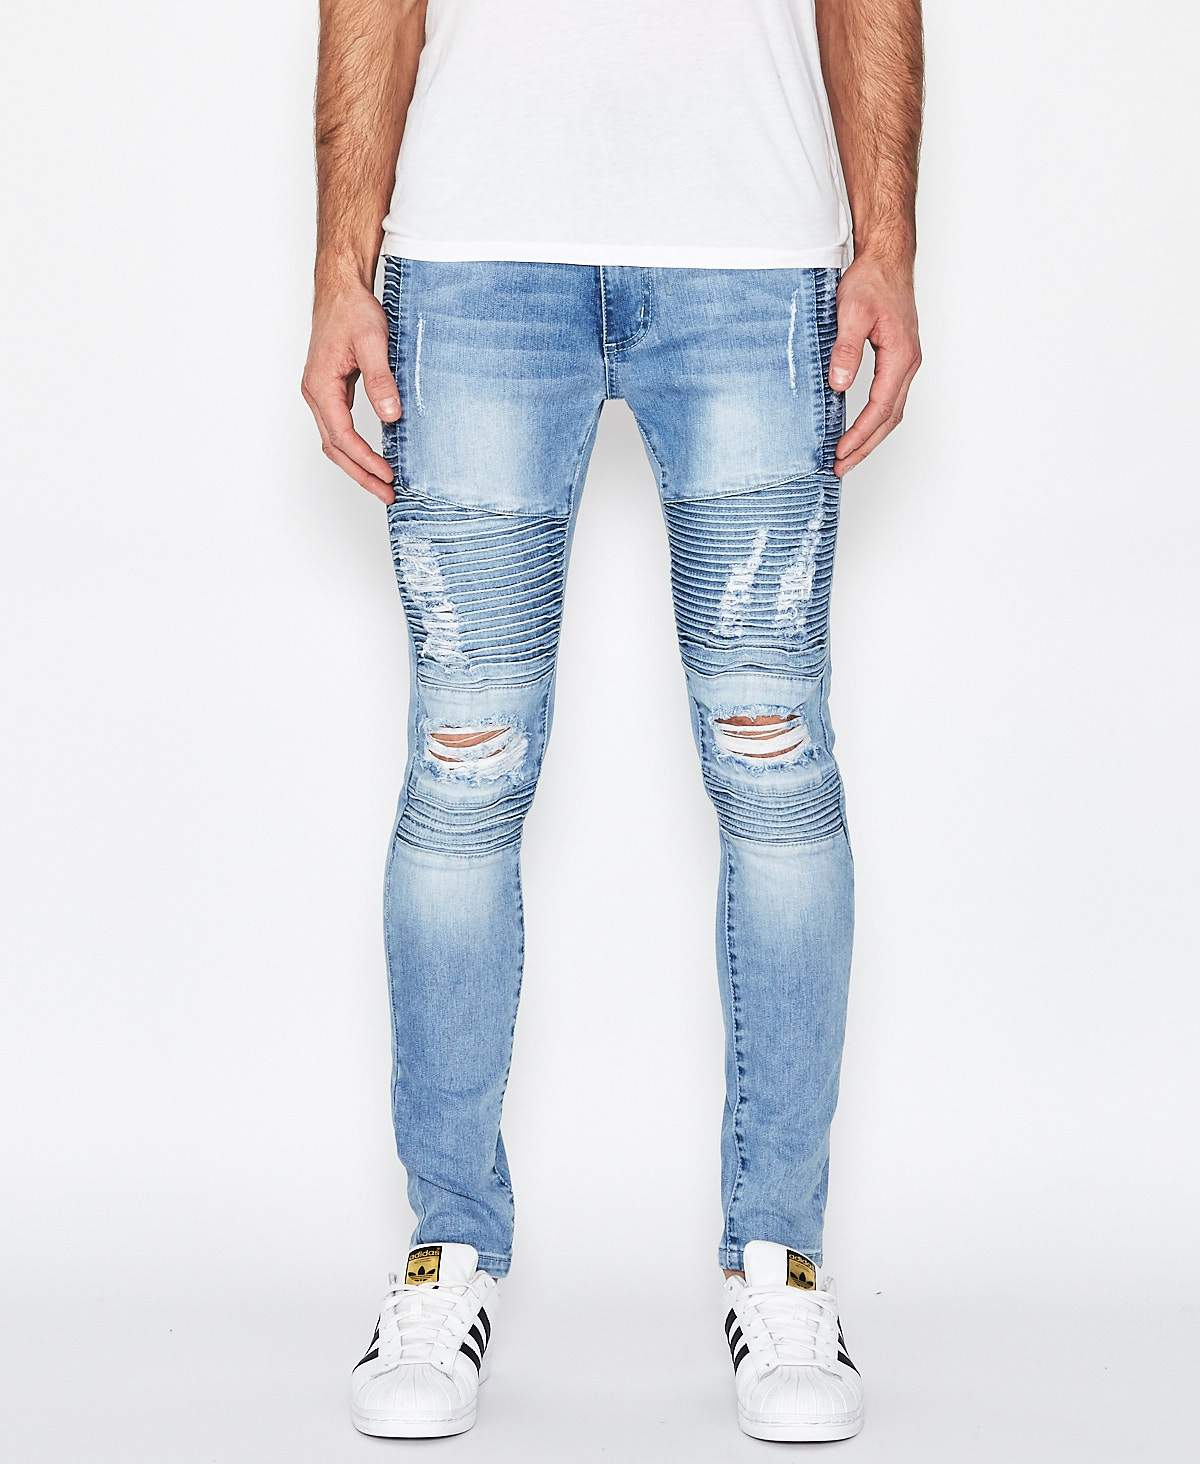 Kiss Chacey Brooklyn Biker Jeans Defiance Blue